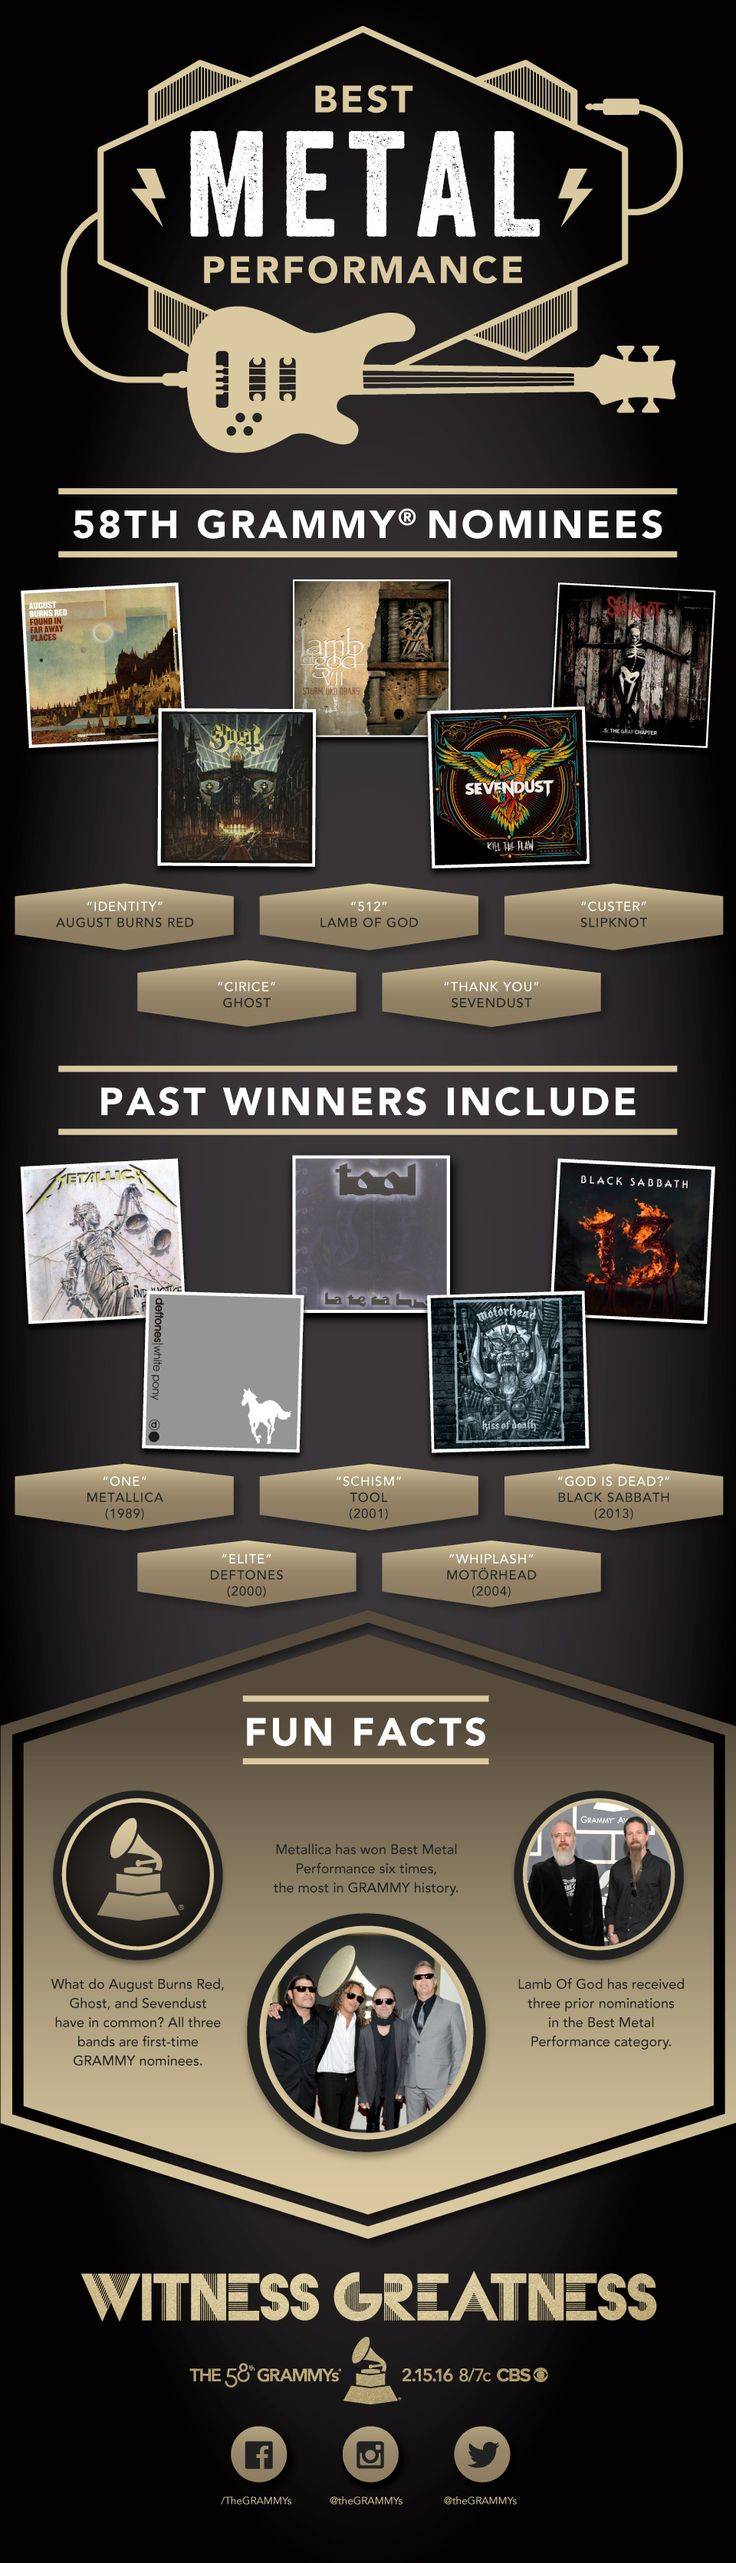 Sevendust For The Win: 58th GRAMMY Awards Best Metal Performance